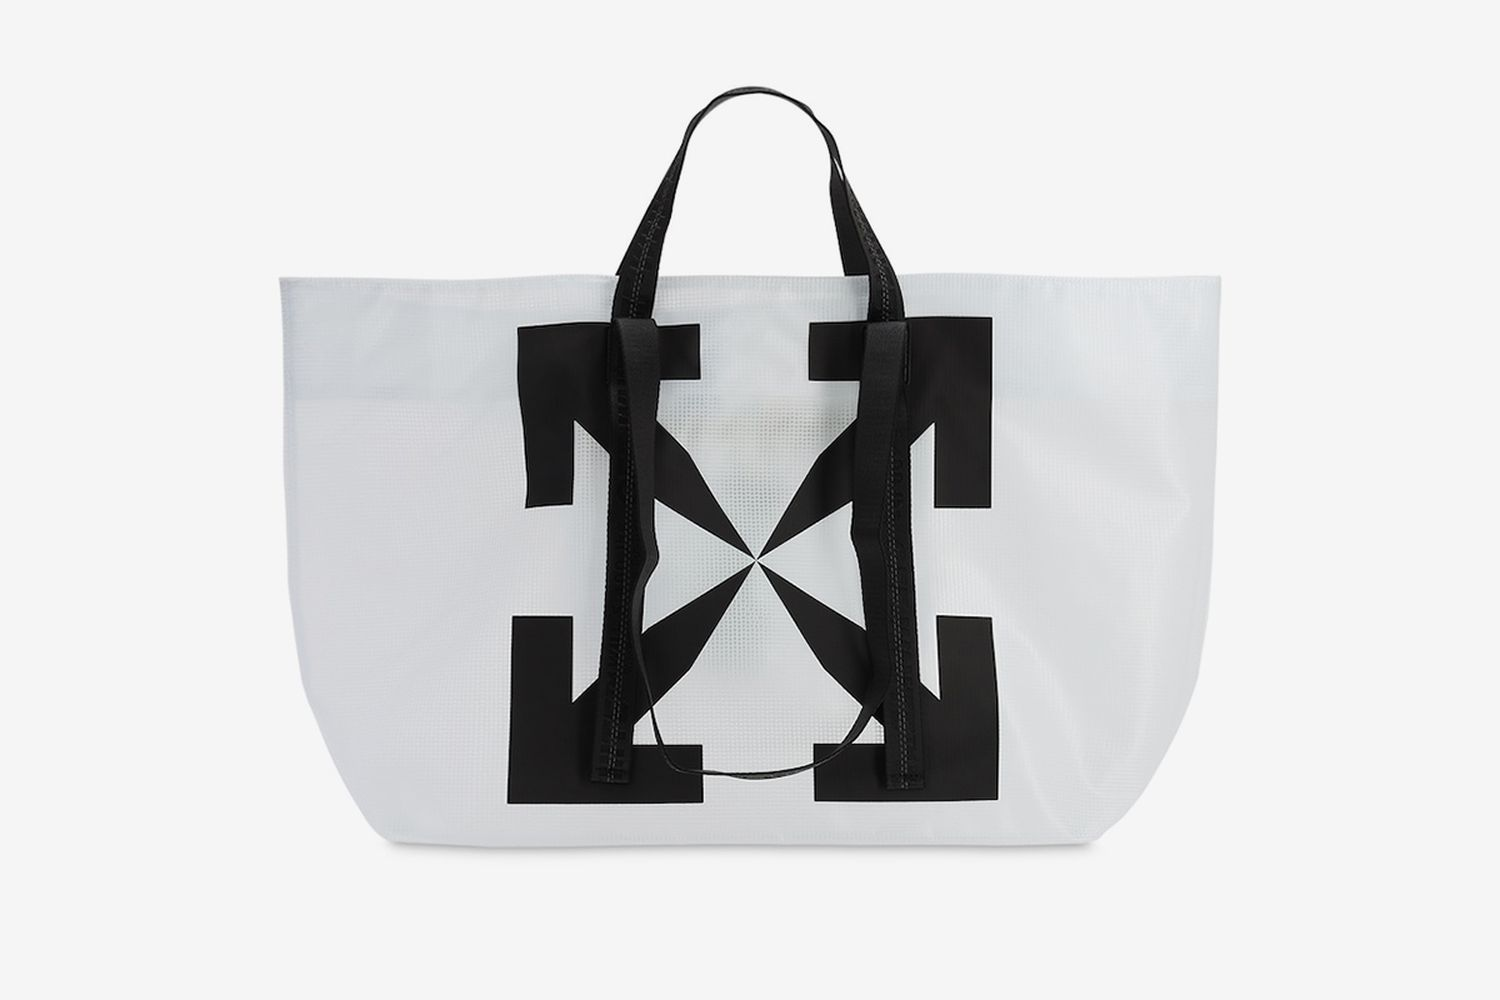 Printed Arrows Pvc Tote Bag